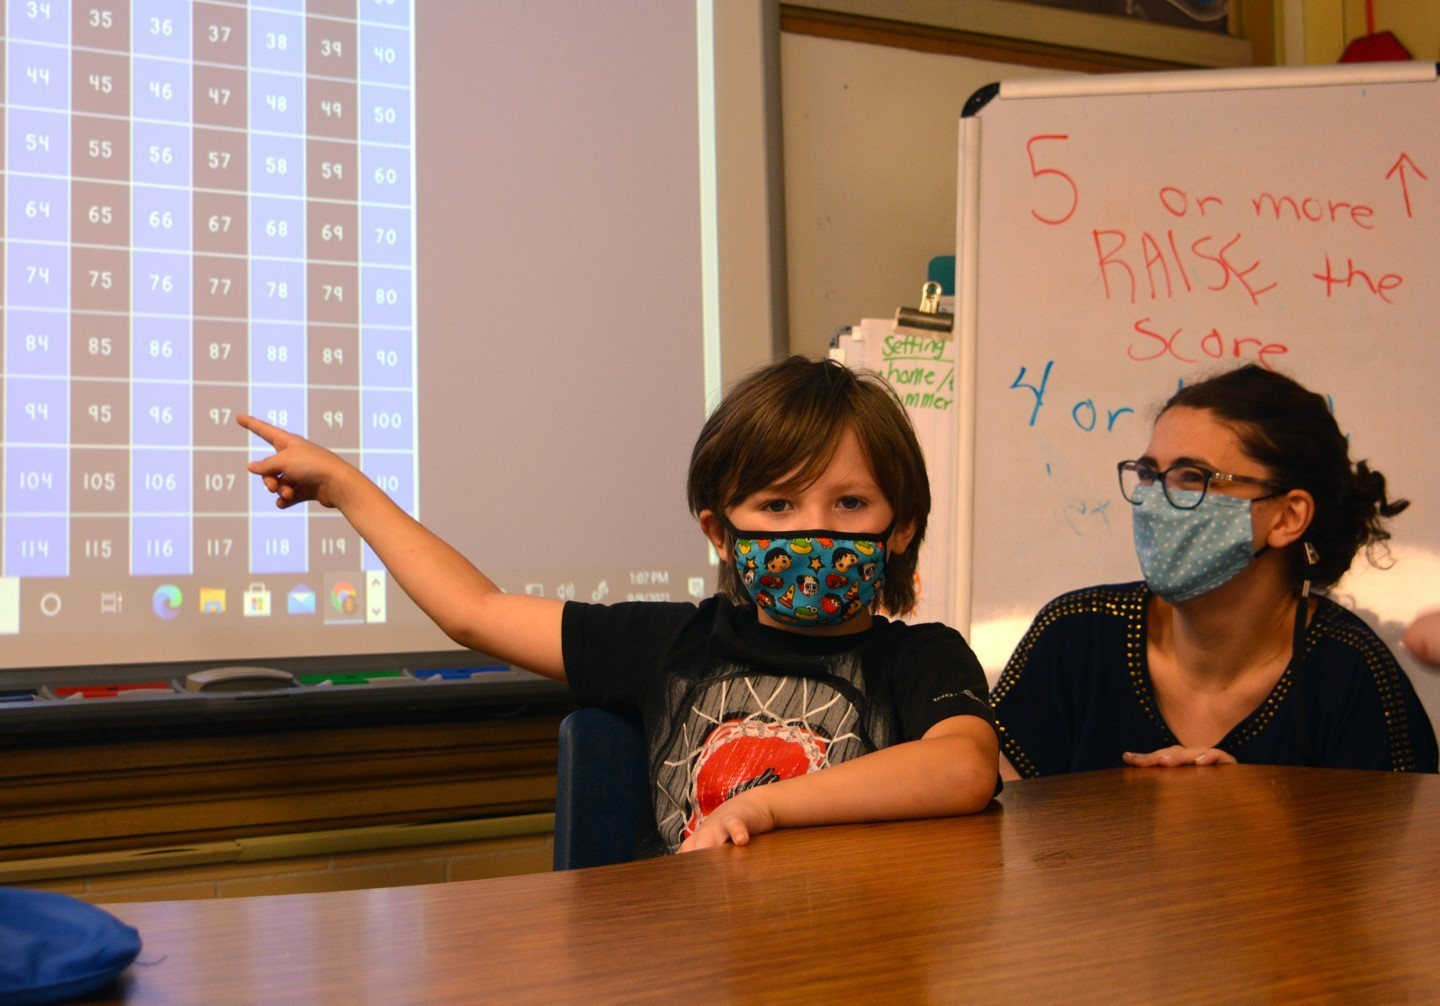 Student pointing to a number board with his teacher.